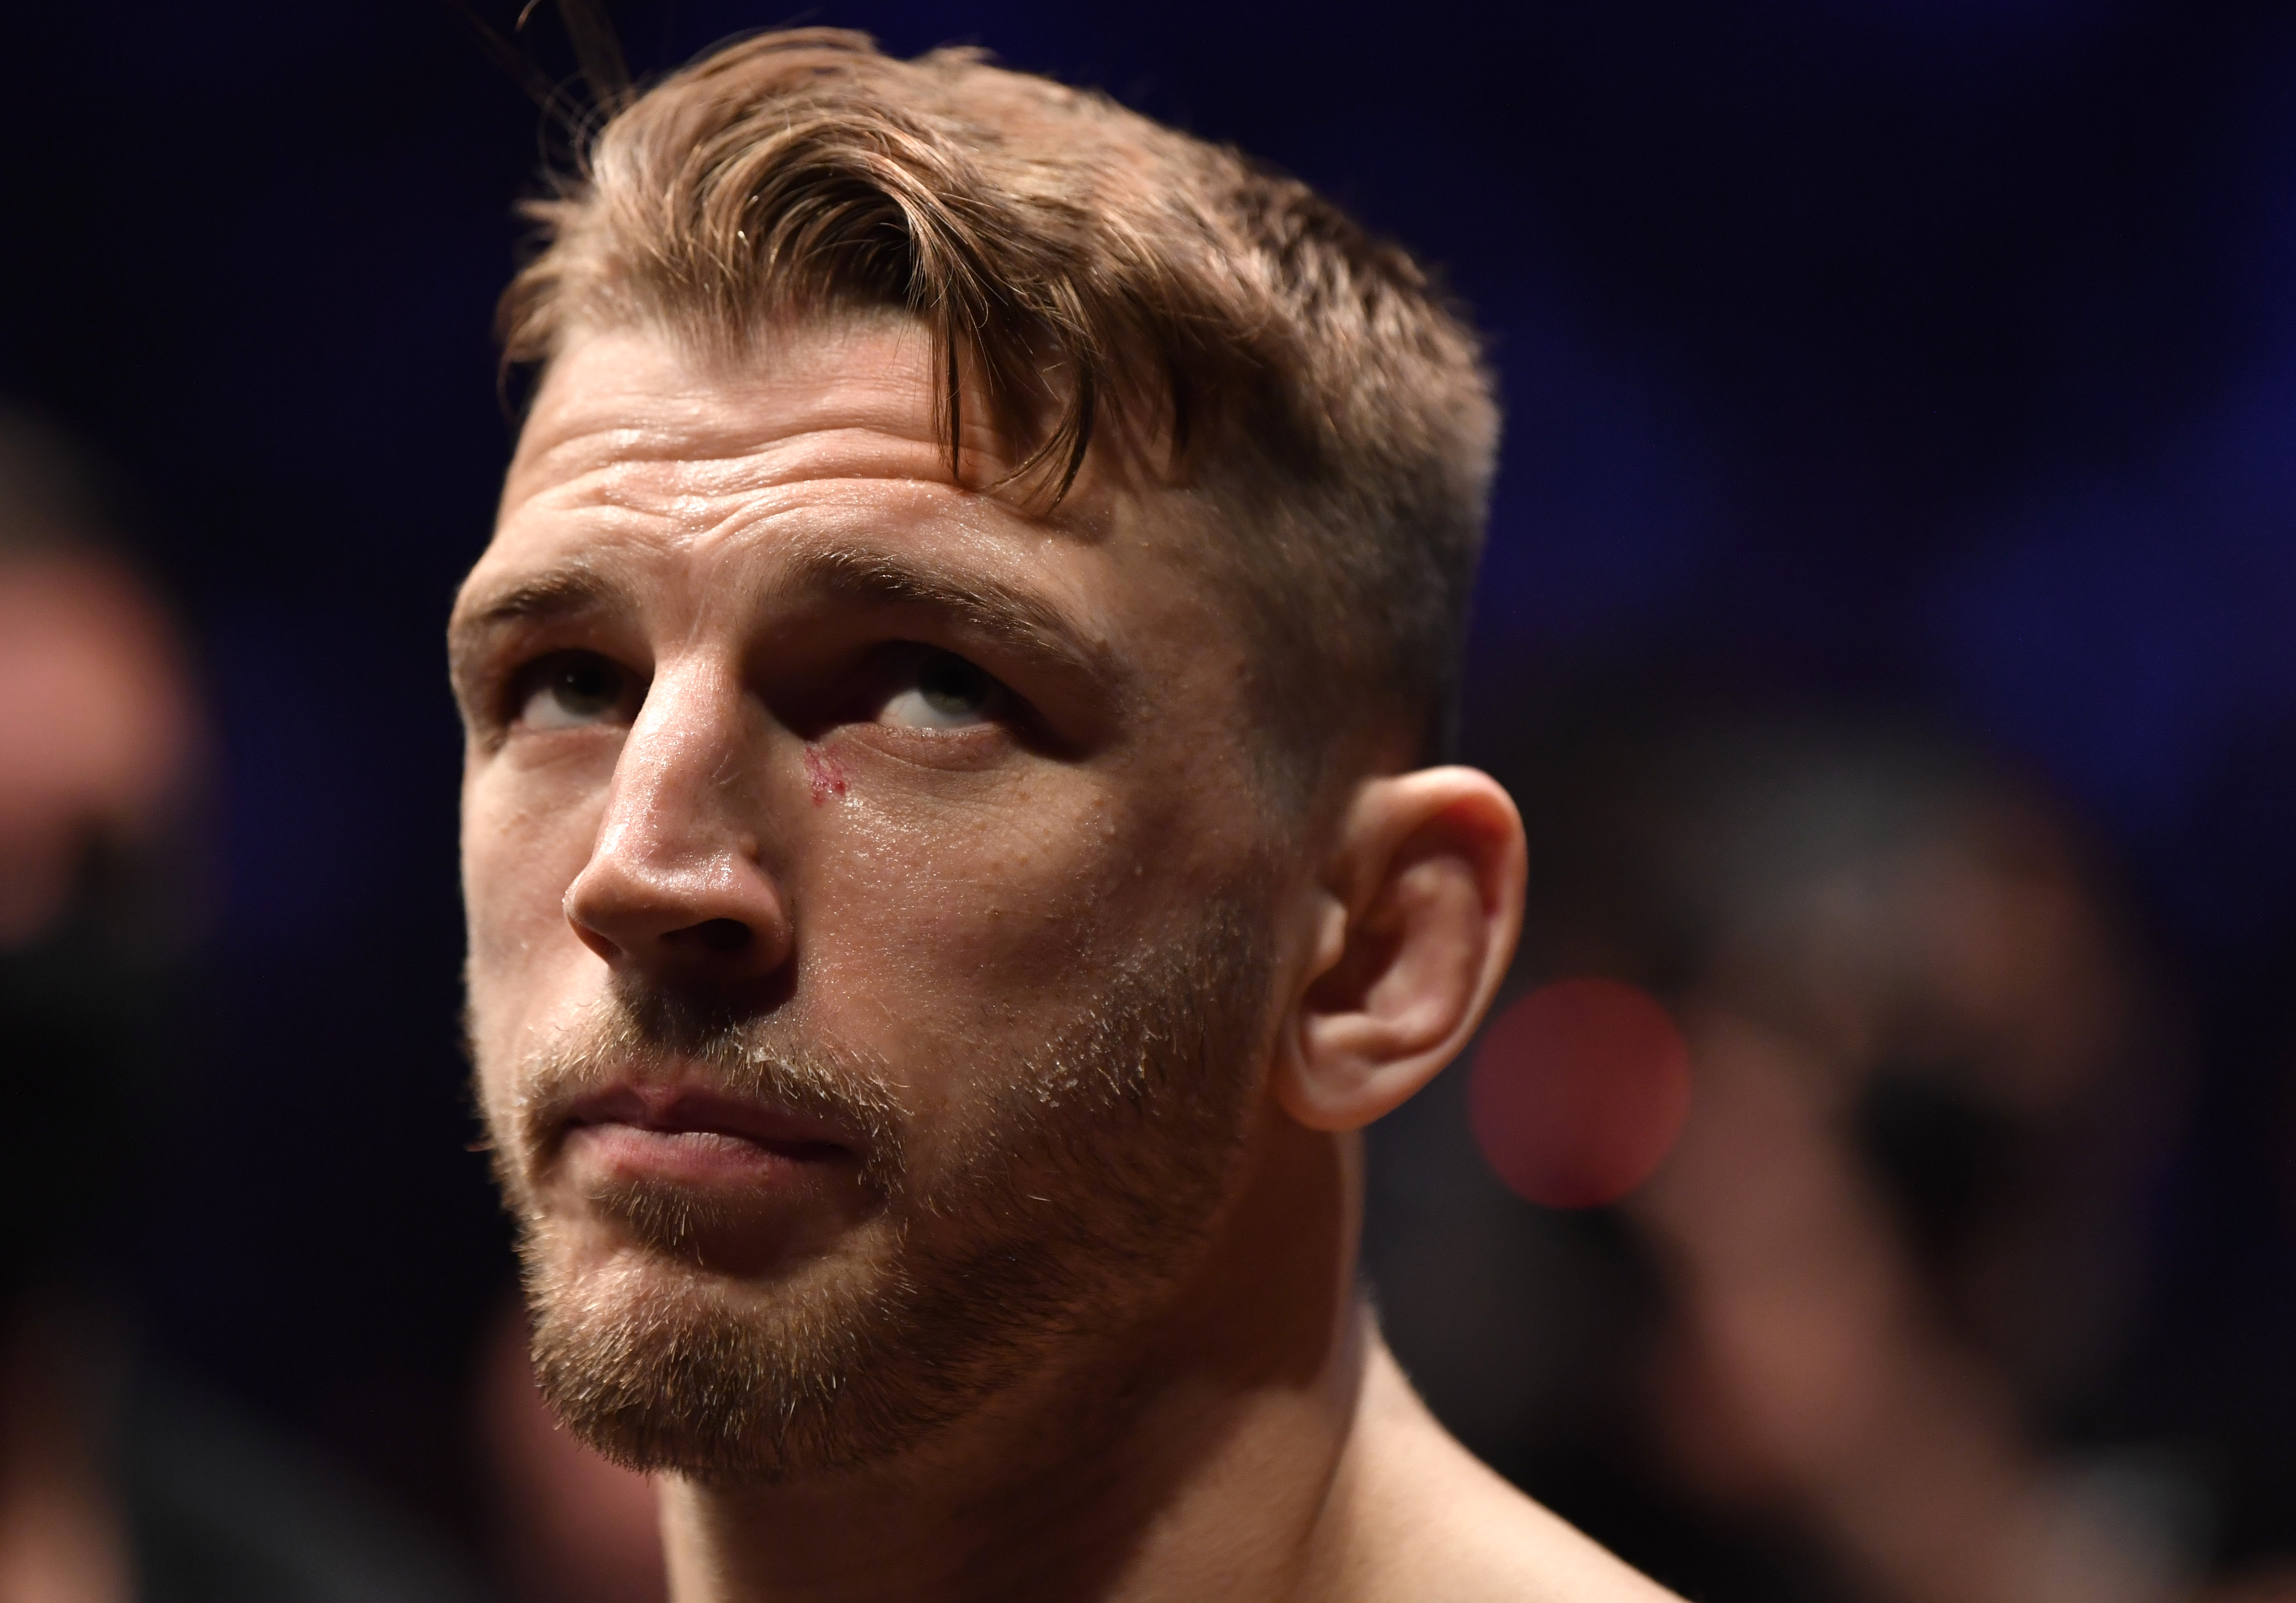 UFC lightweight contender Dan Hooker is thinking about possibly relocating to the United States.